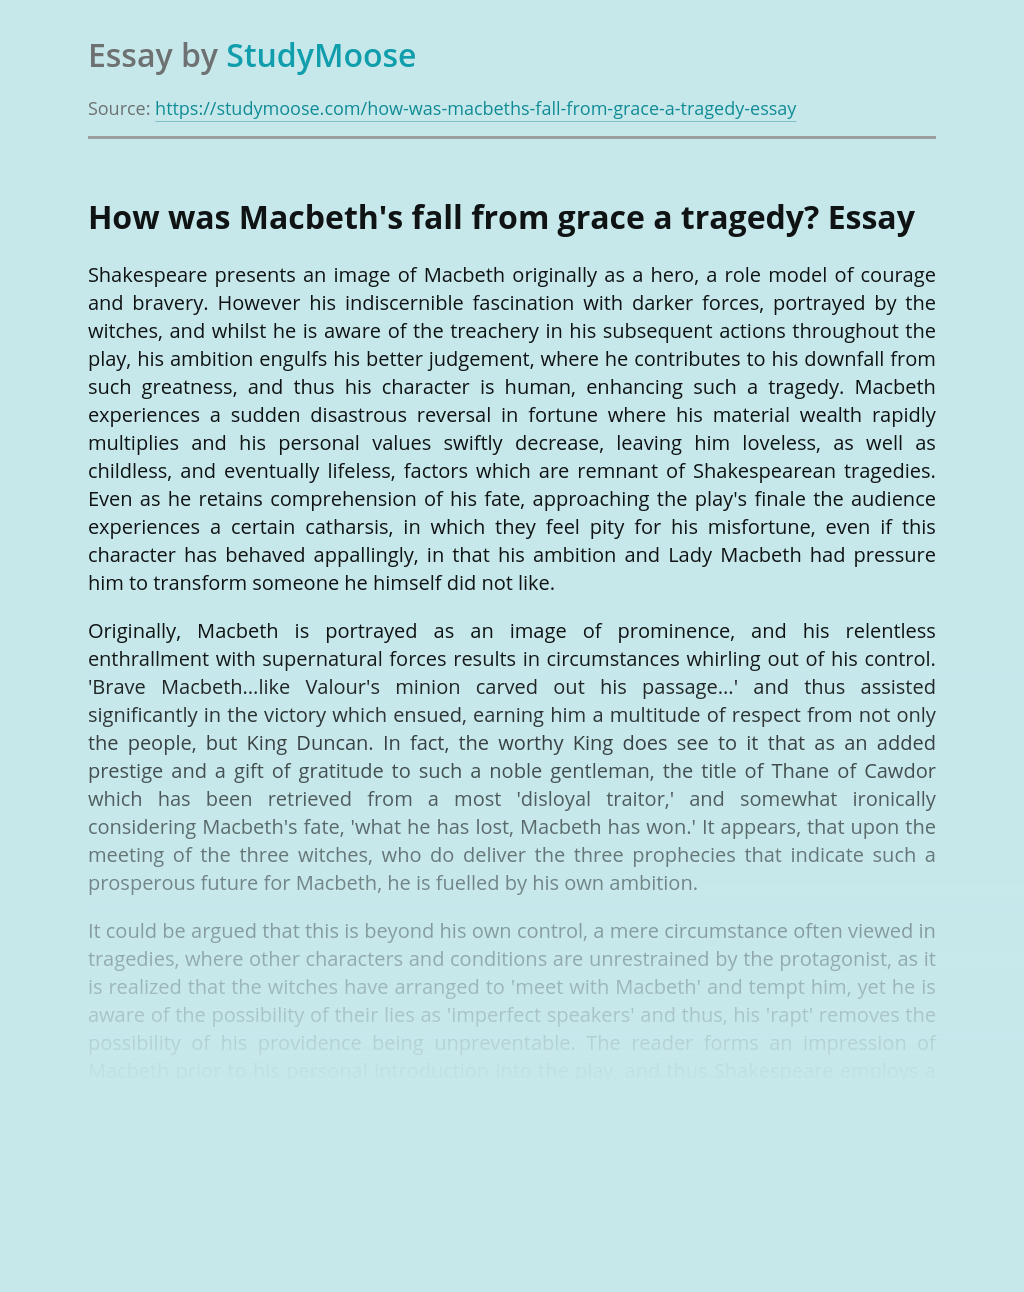 How was Macbeth's fall from grace a tragedy?